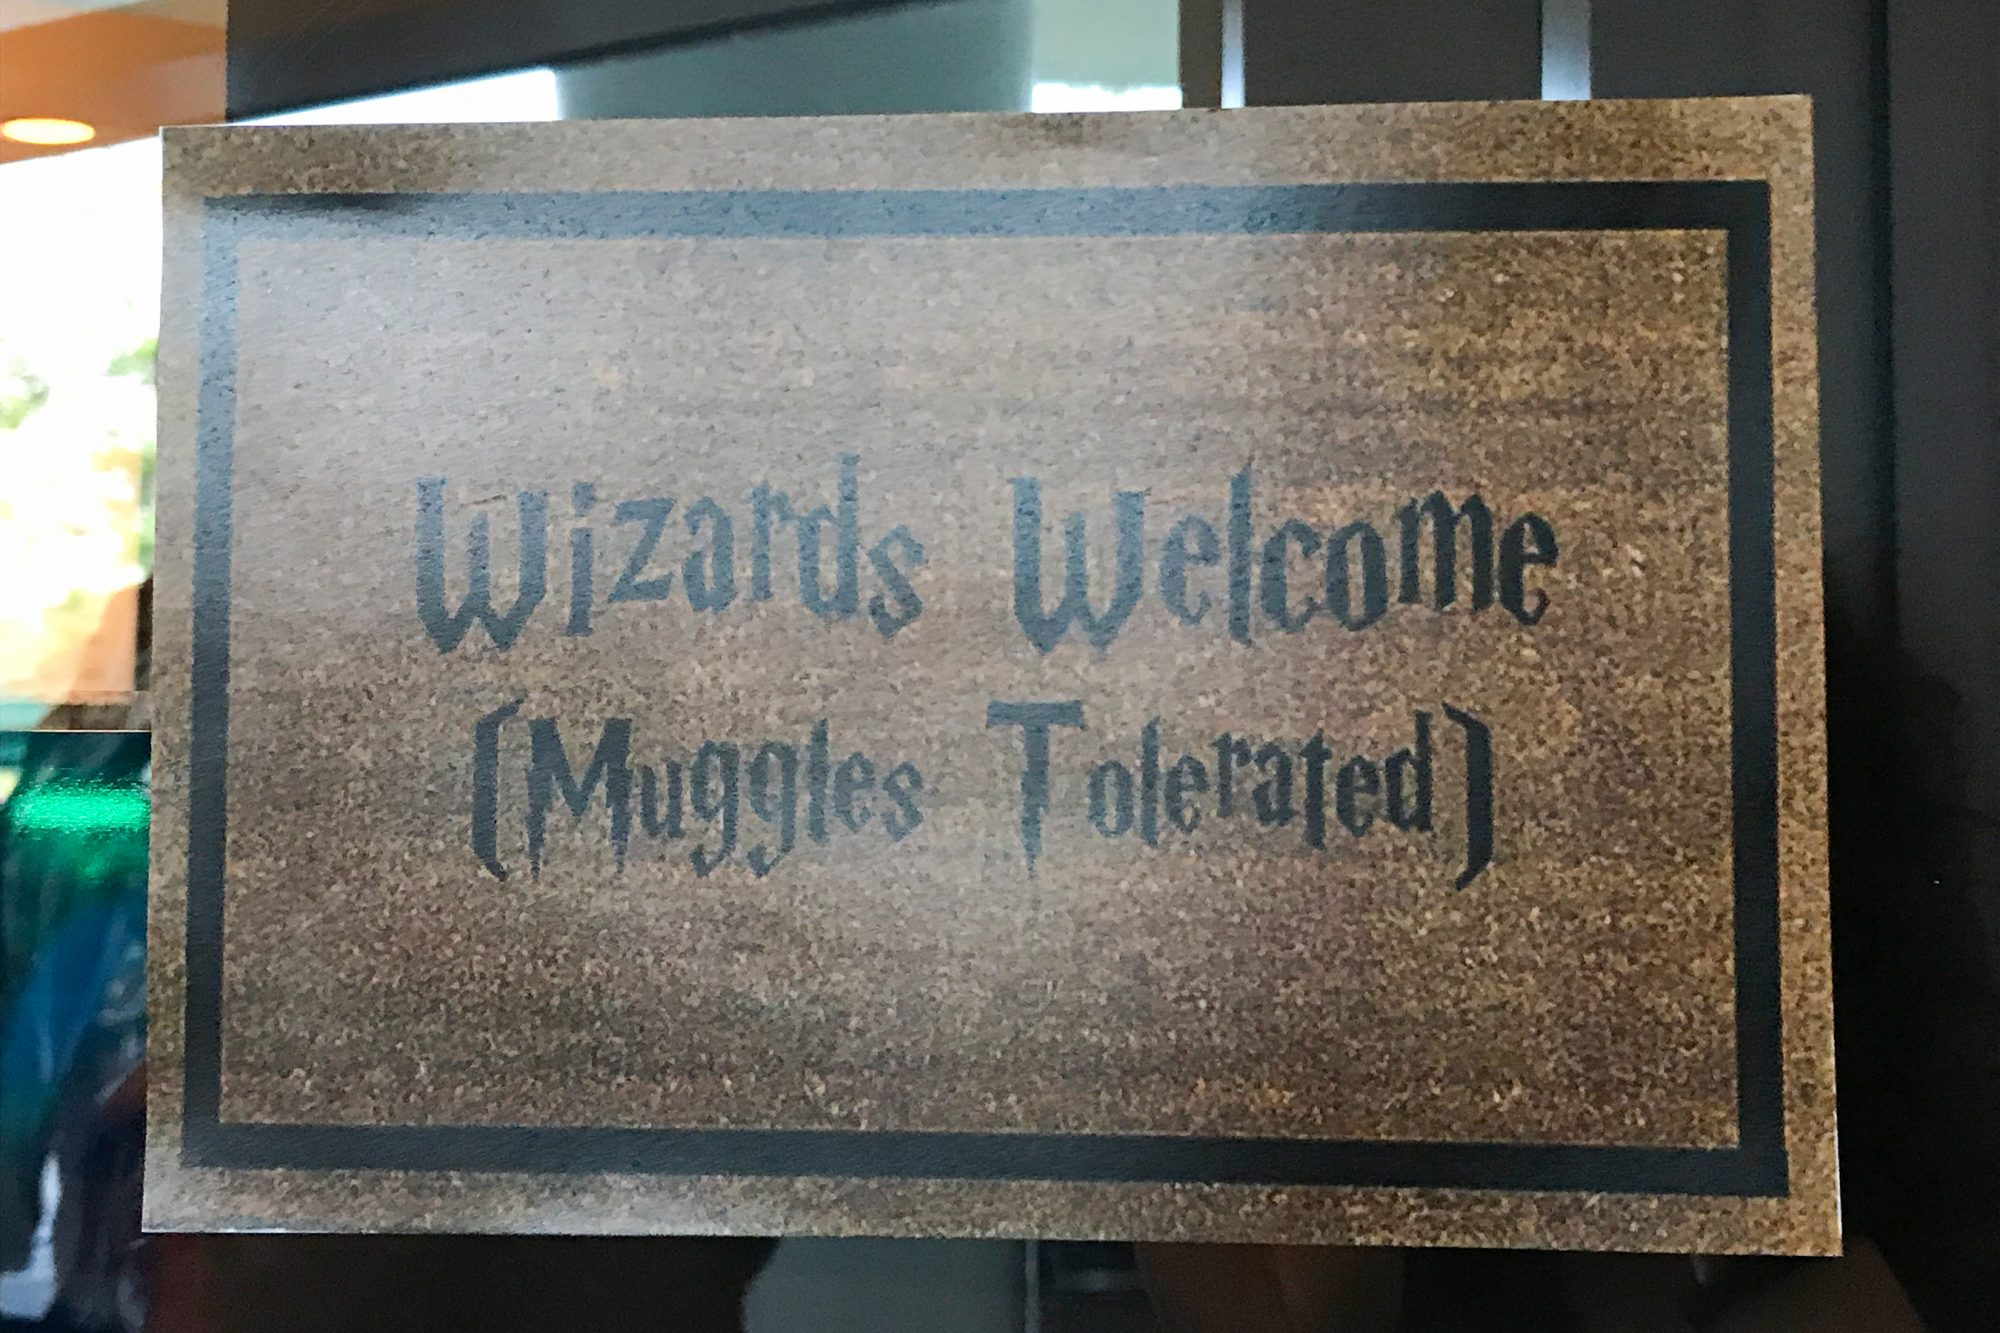 Wizards welcome!